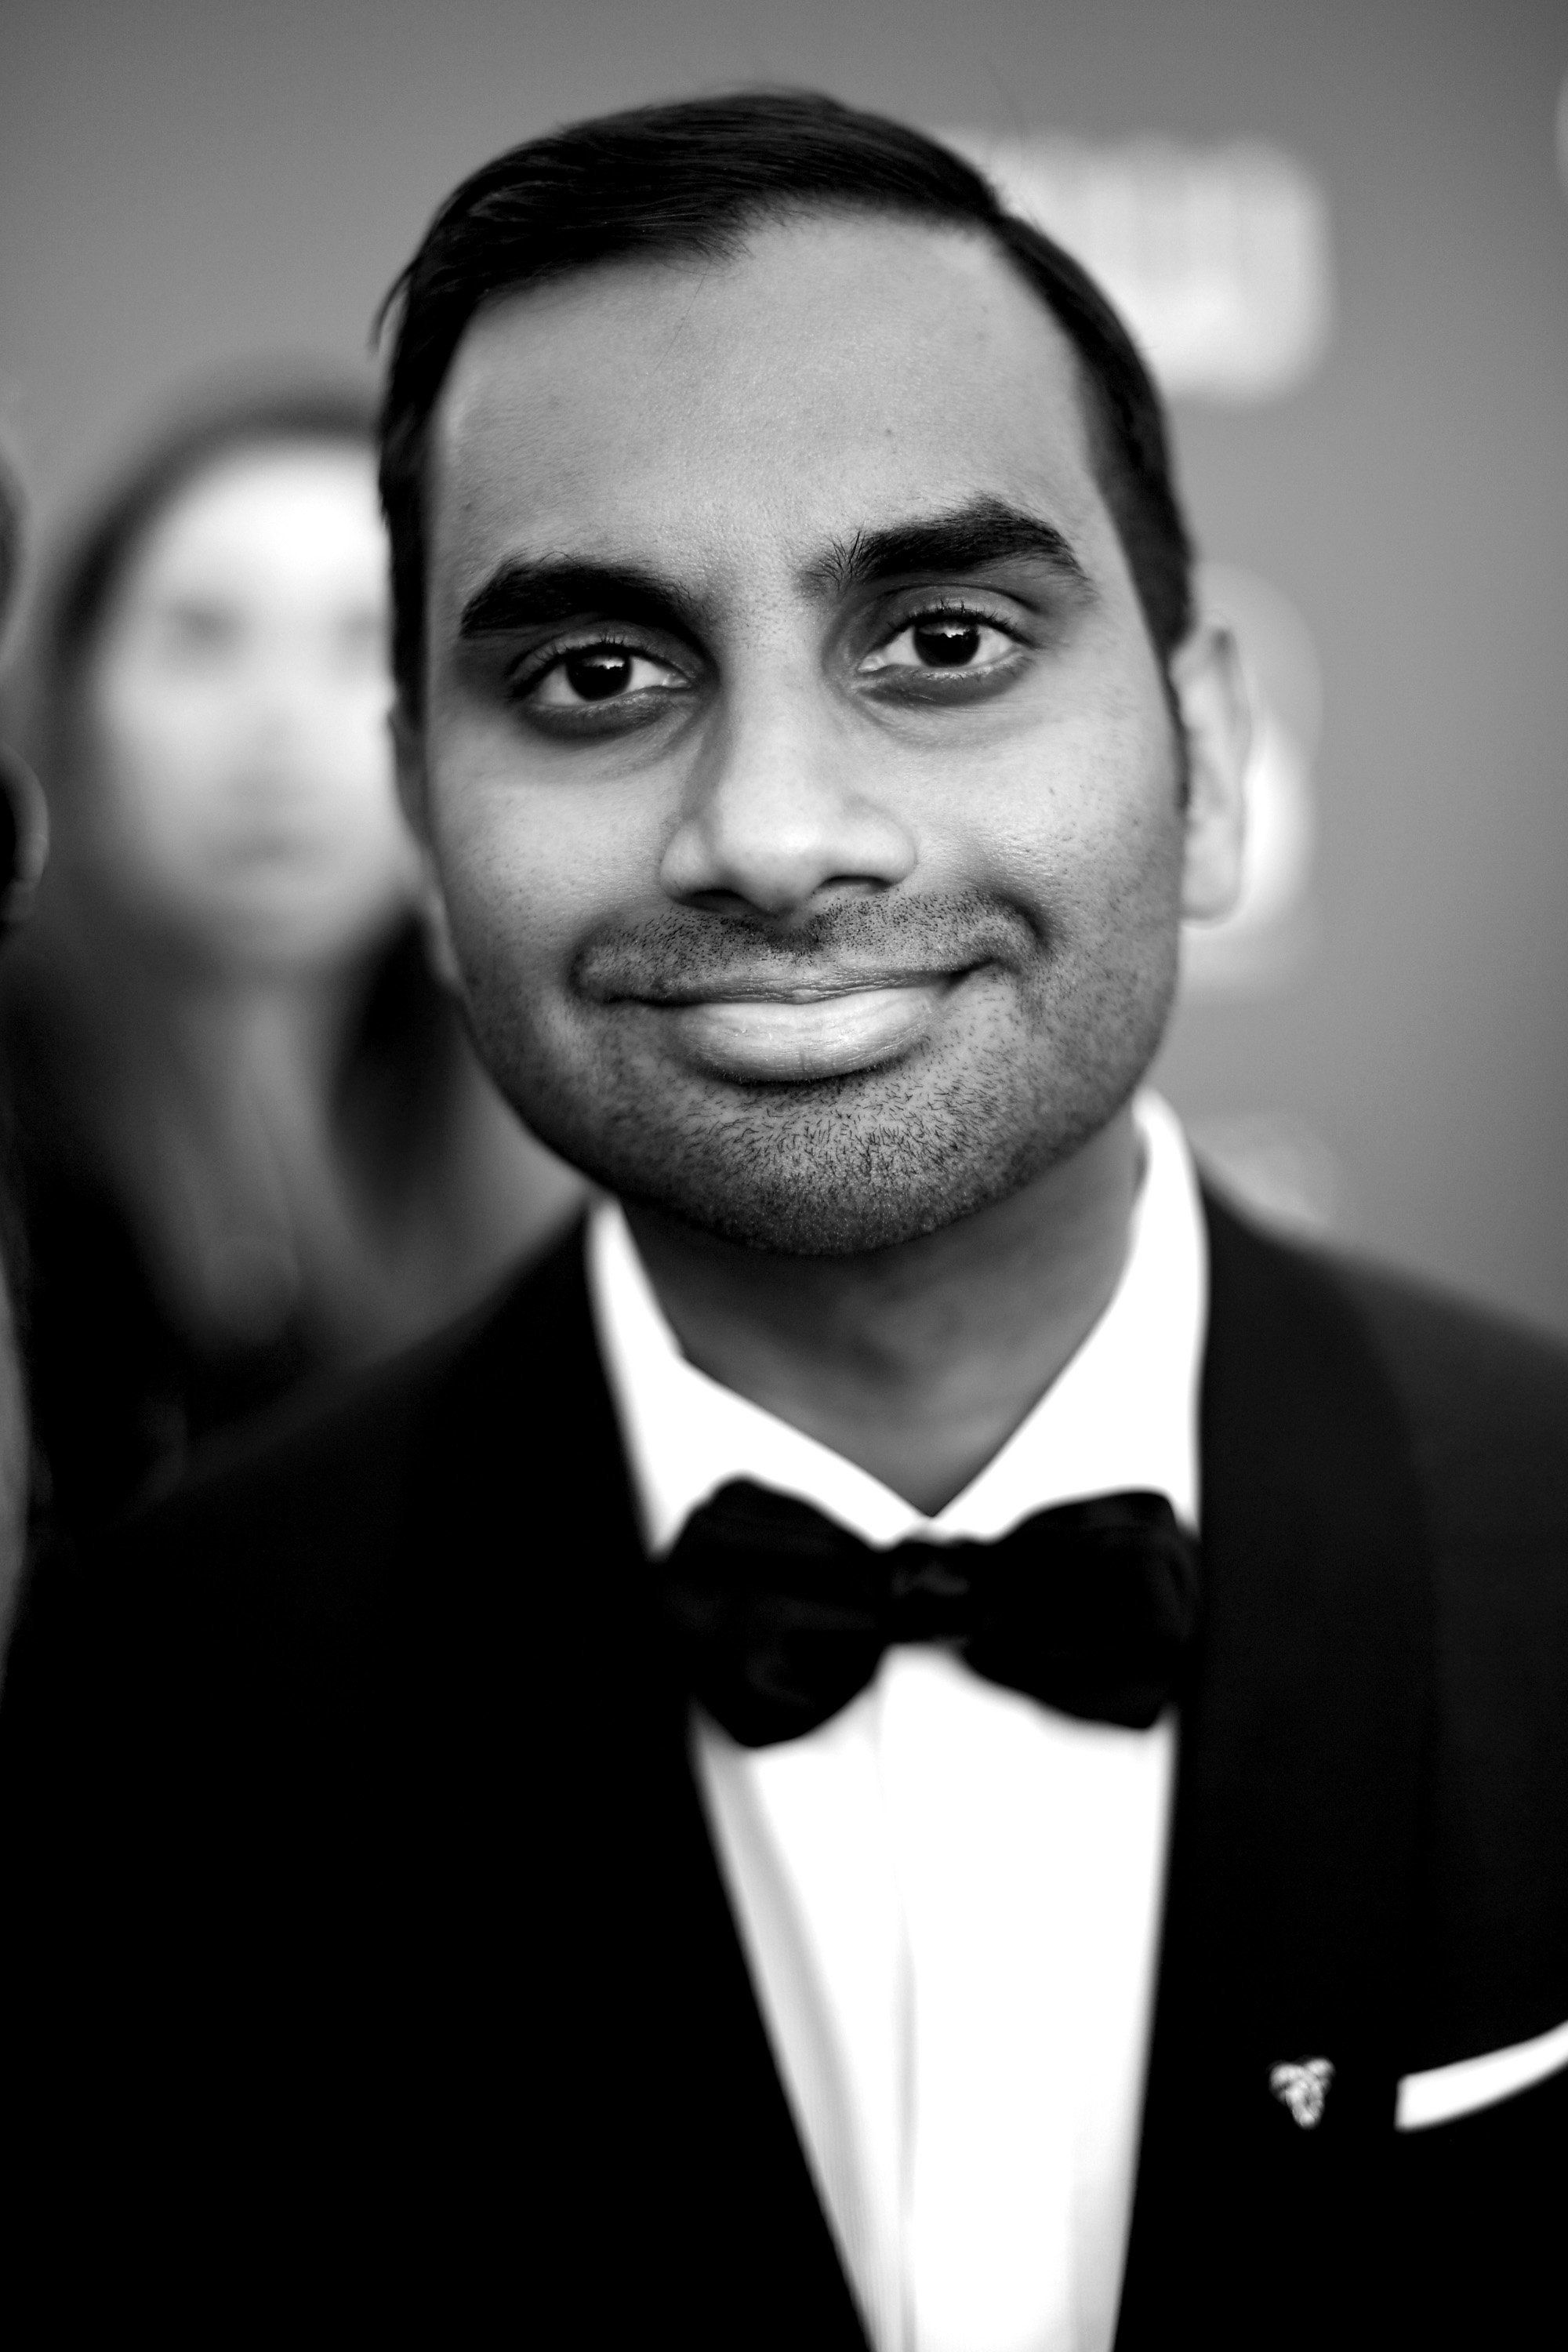 SANTA MONICA, CA - JANUARY 11:  (EDITORS NOTE: Image was converted to black and white.) Aziz Ansari attends The 23rd Annual Critics' Choice Awards at Barker Hangar on January 11, 2018 in Santa Monica, California.  (Photo by Matt Winkelmeyer/Getty Images for The Critics' Choice Awards  )